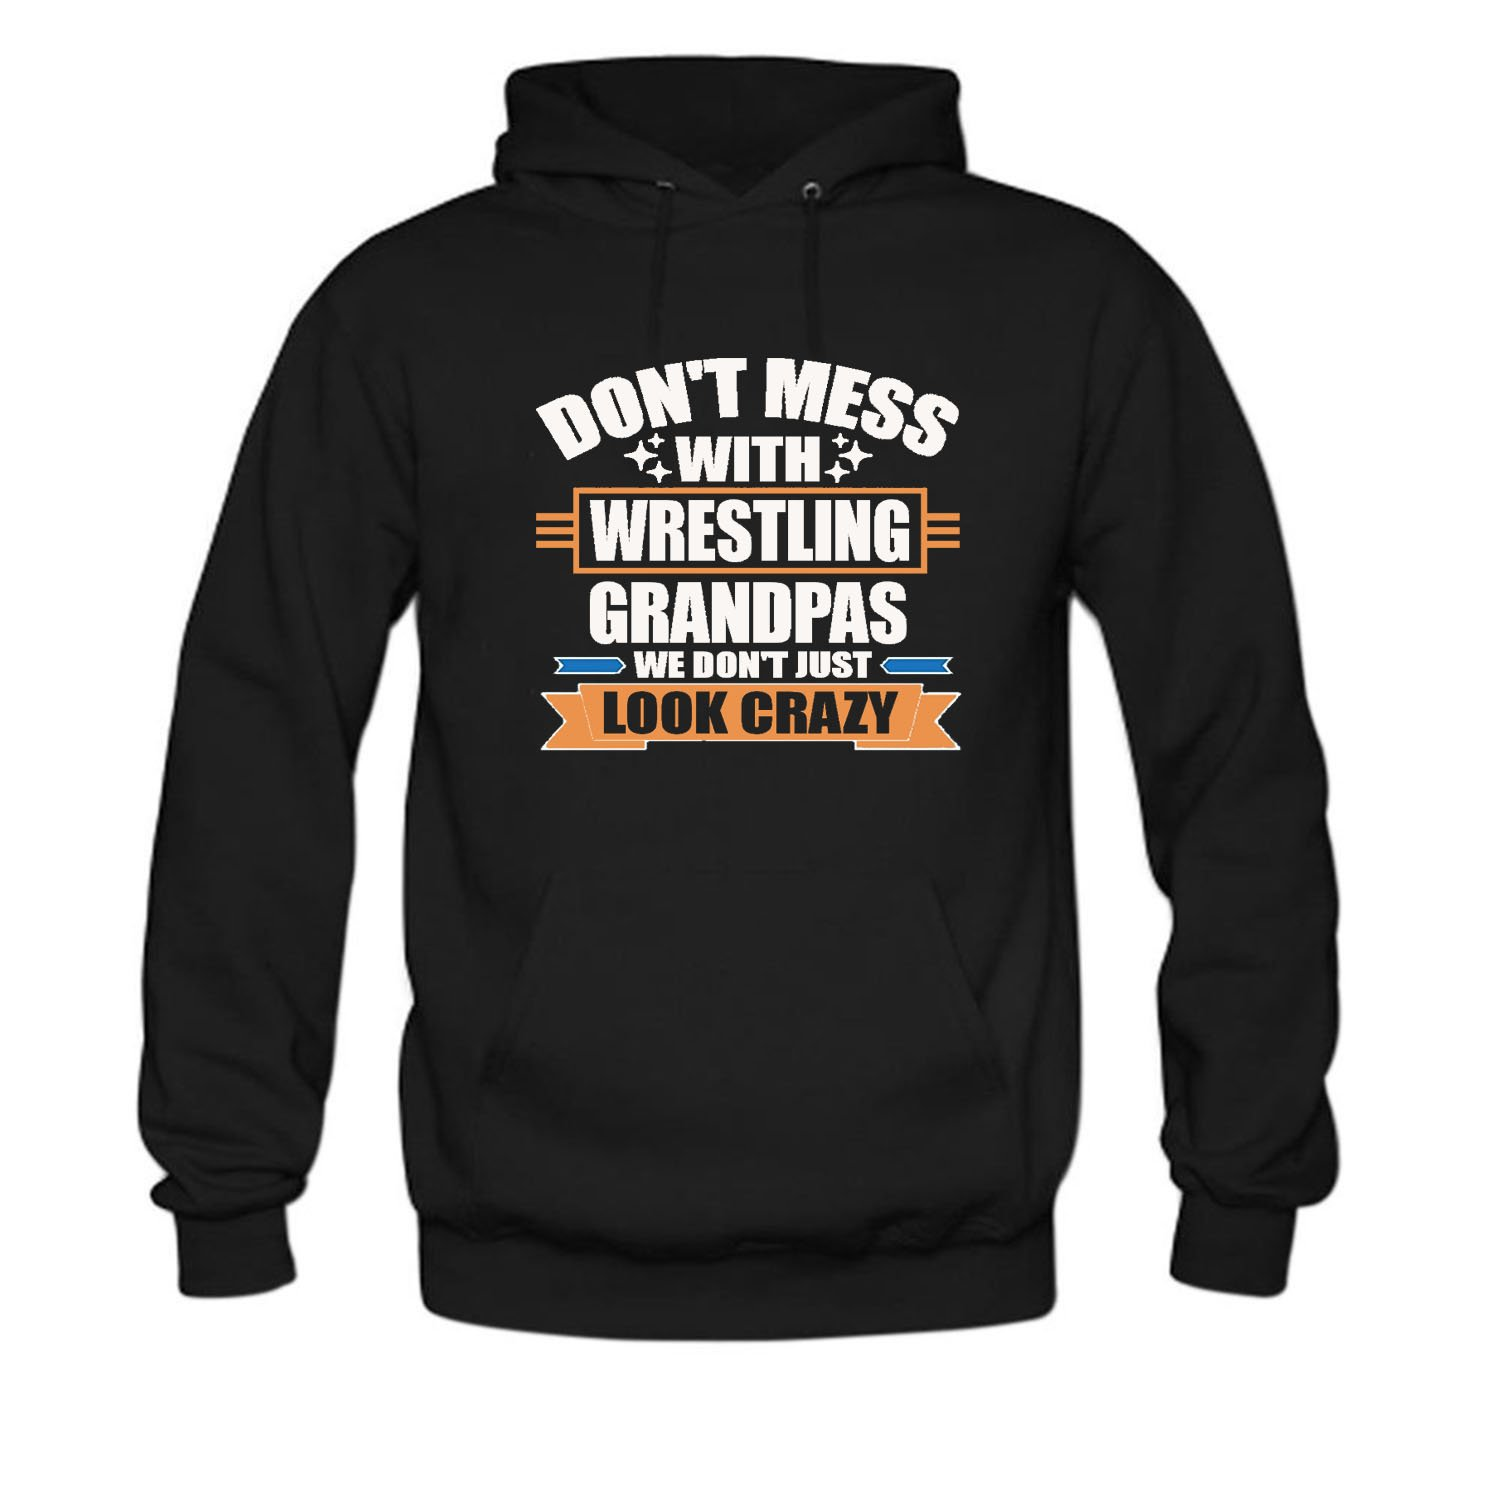 CCBING Women's Don't Mess With Wrestling Grandpas We Don't Just Look Crazy Hoodie